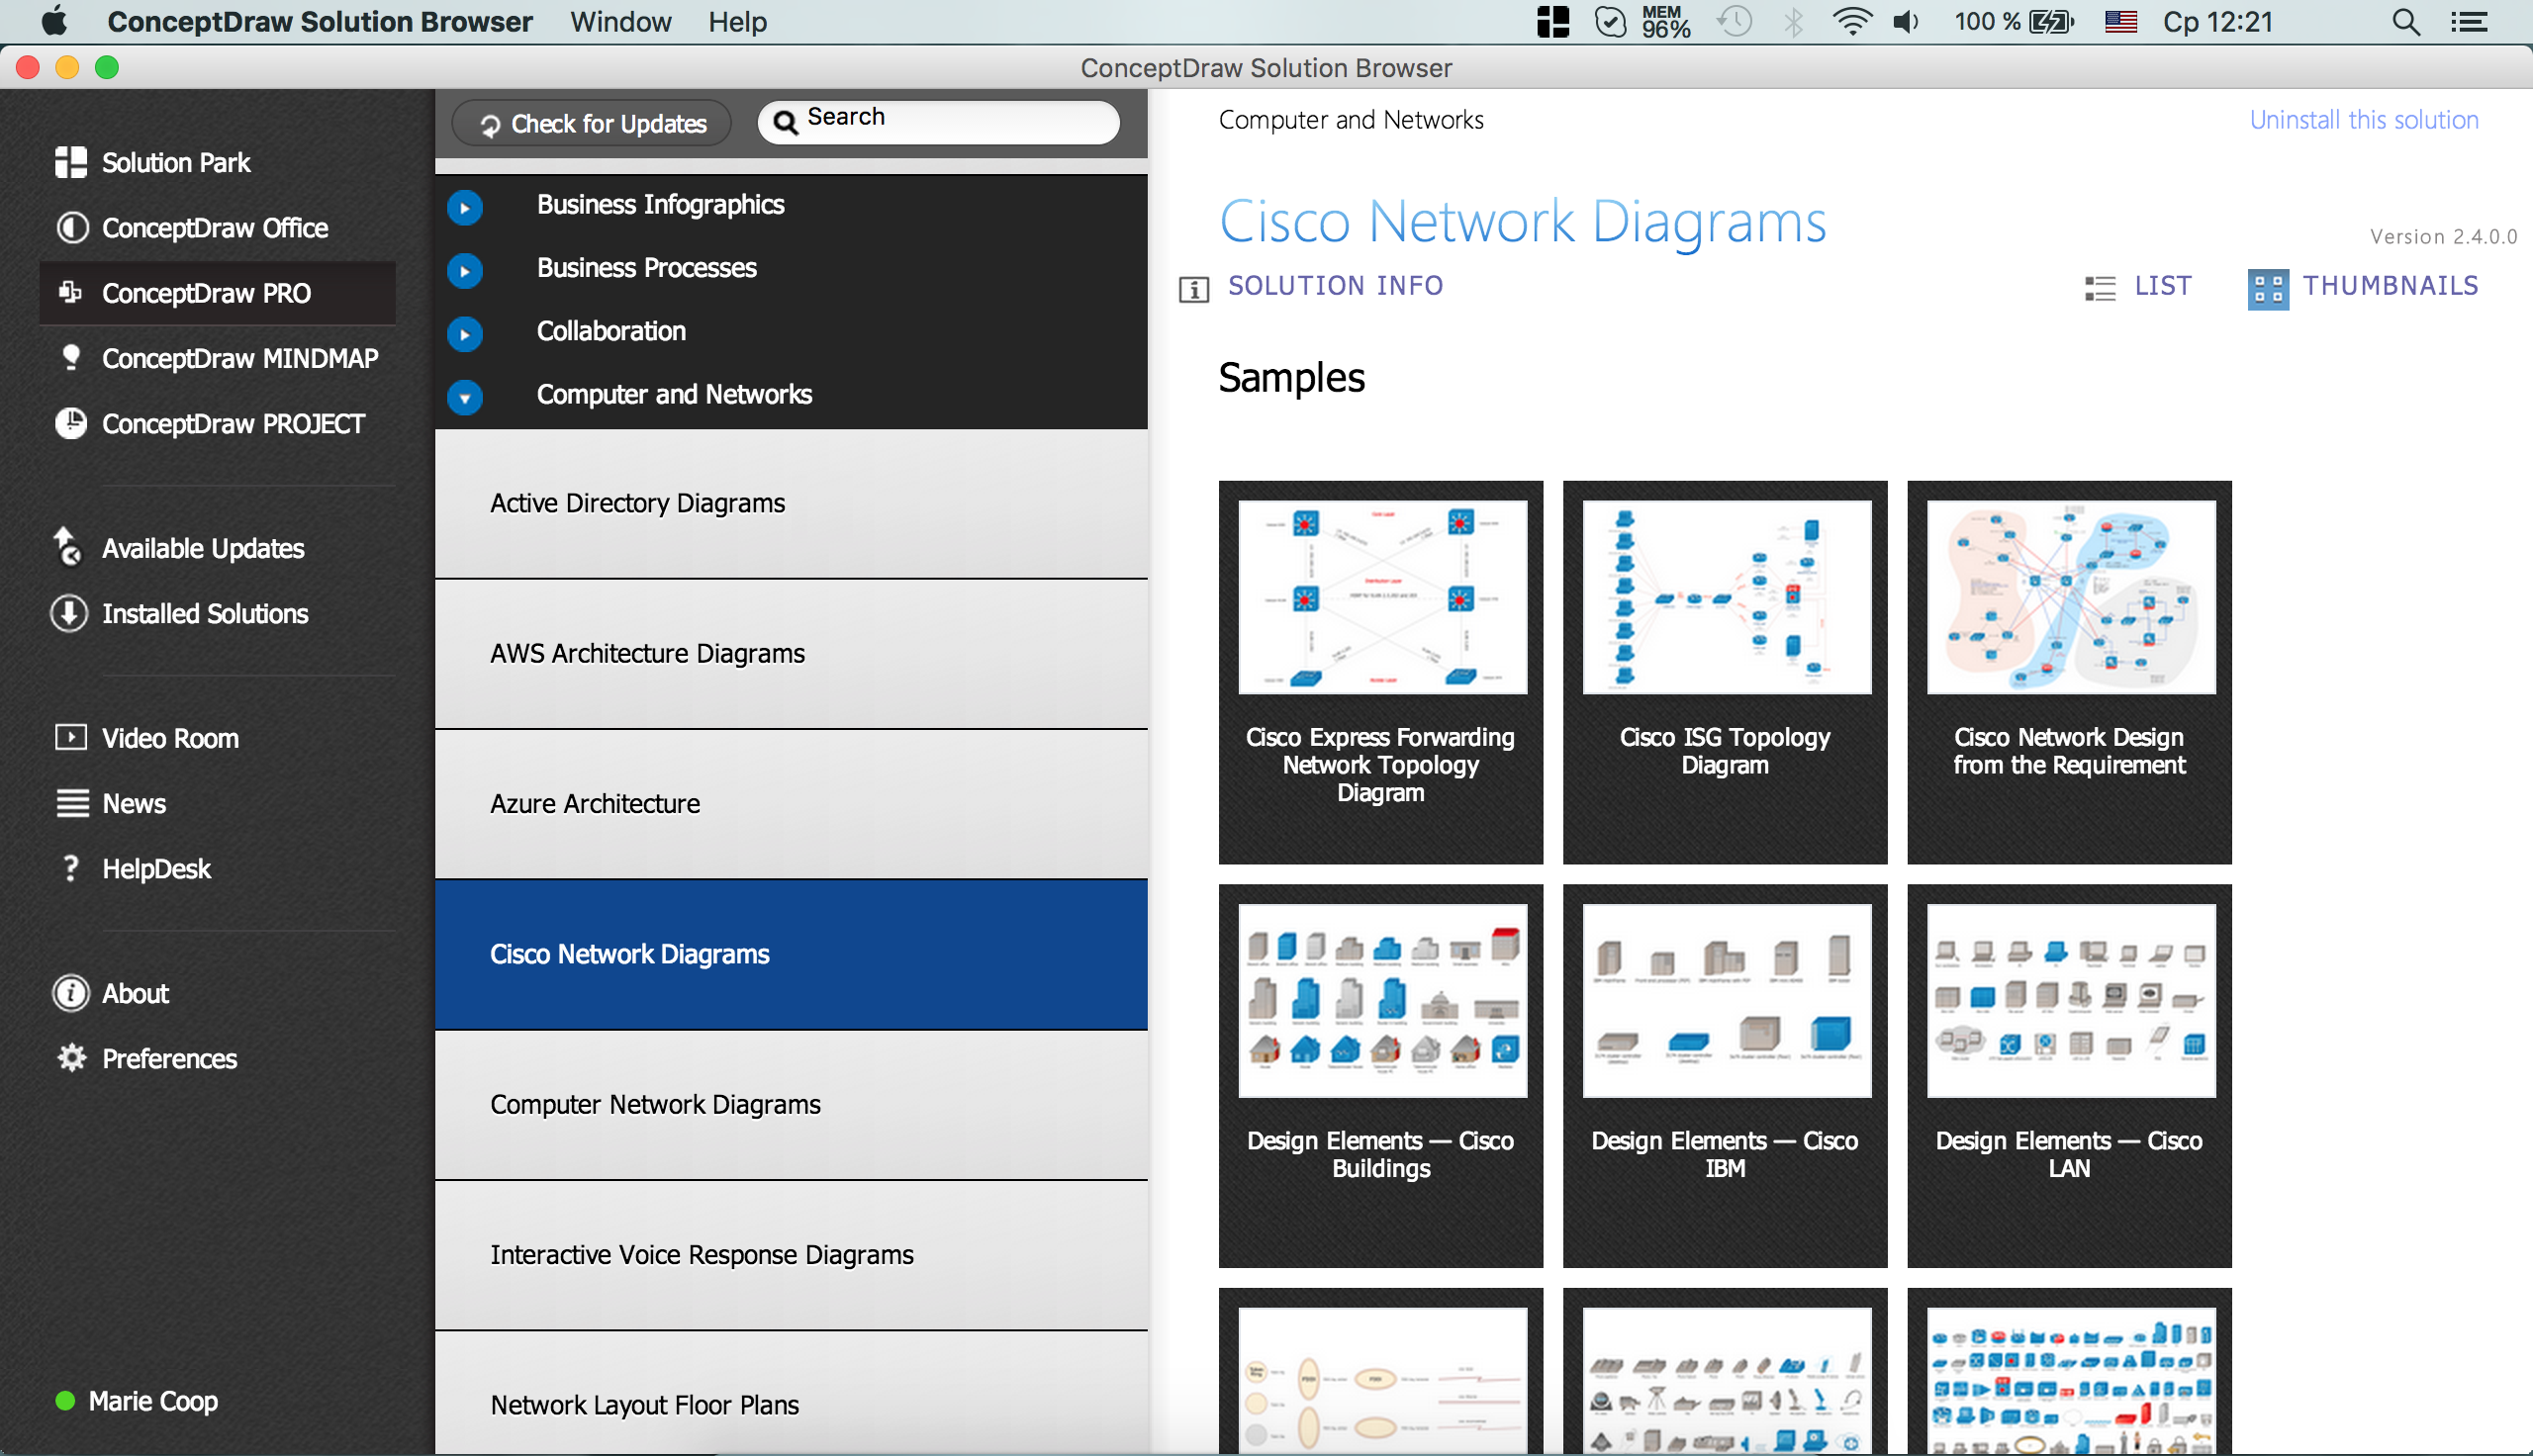 Cisco Products Additional Icons Shapes Stencils And Symbols Network Diagram Design Elements Switches Hubs Win Solution